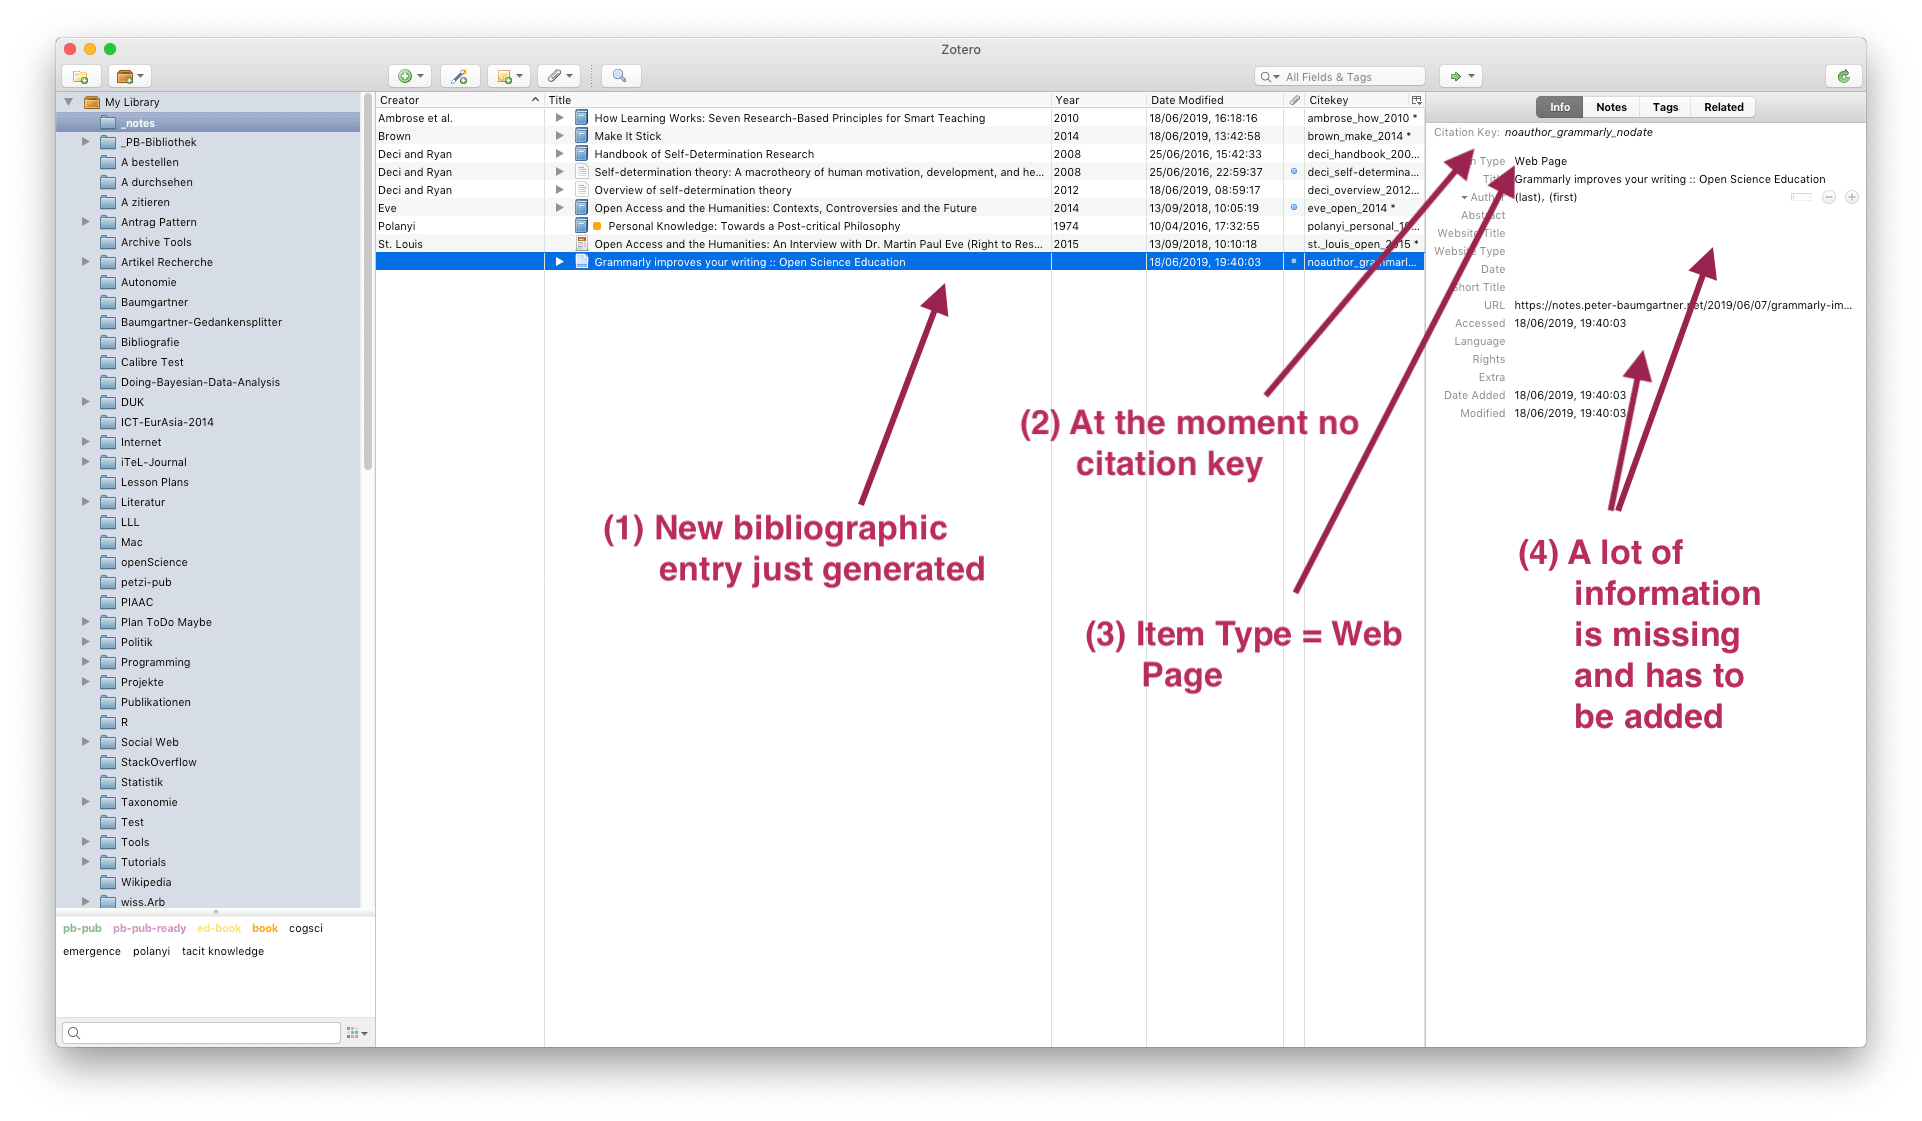 Sreenshot of the Zotero bilbiograpy with the new downloaed biobliographic entry.